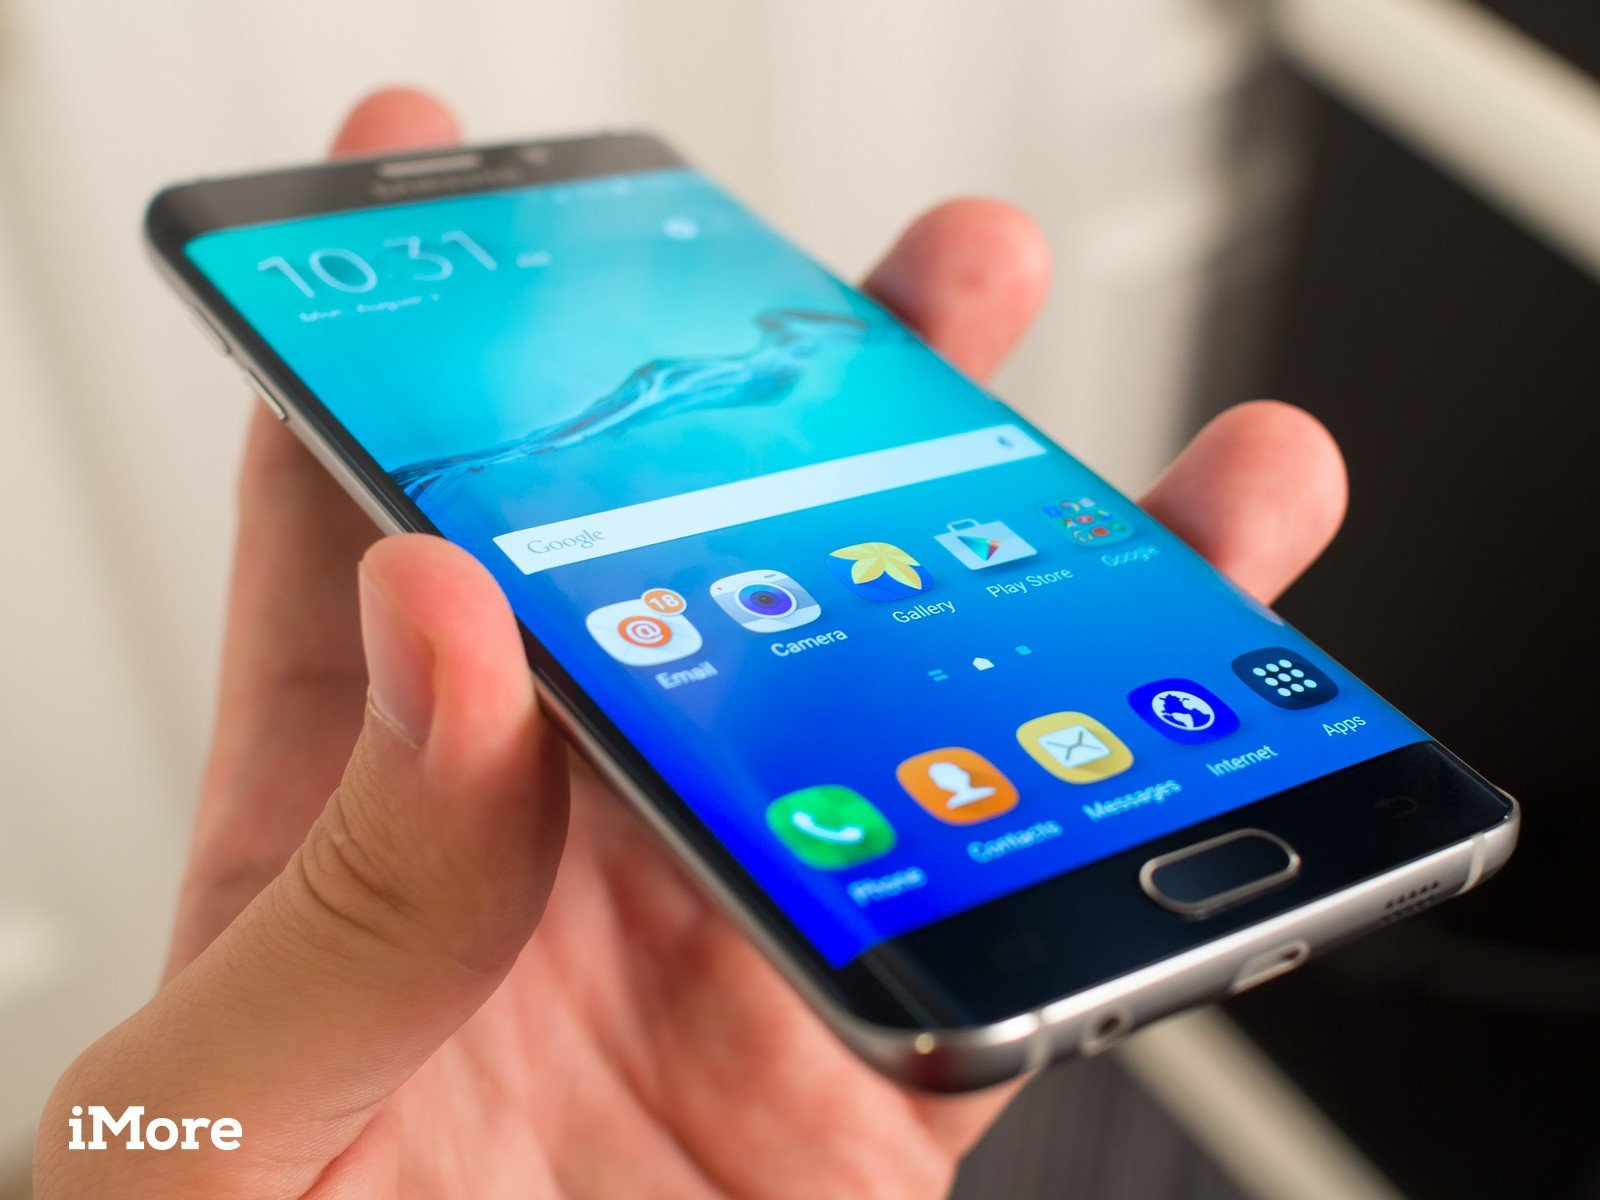 Samsung tries to get out ahead of iPhone 6s Plus with Samsung Galaxy S6 edge Plus... er... +